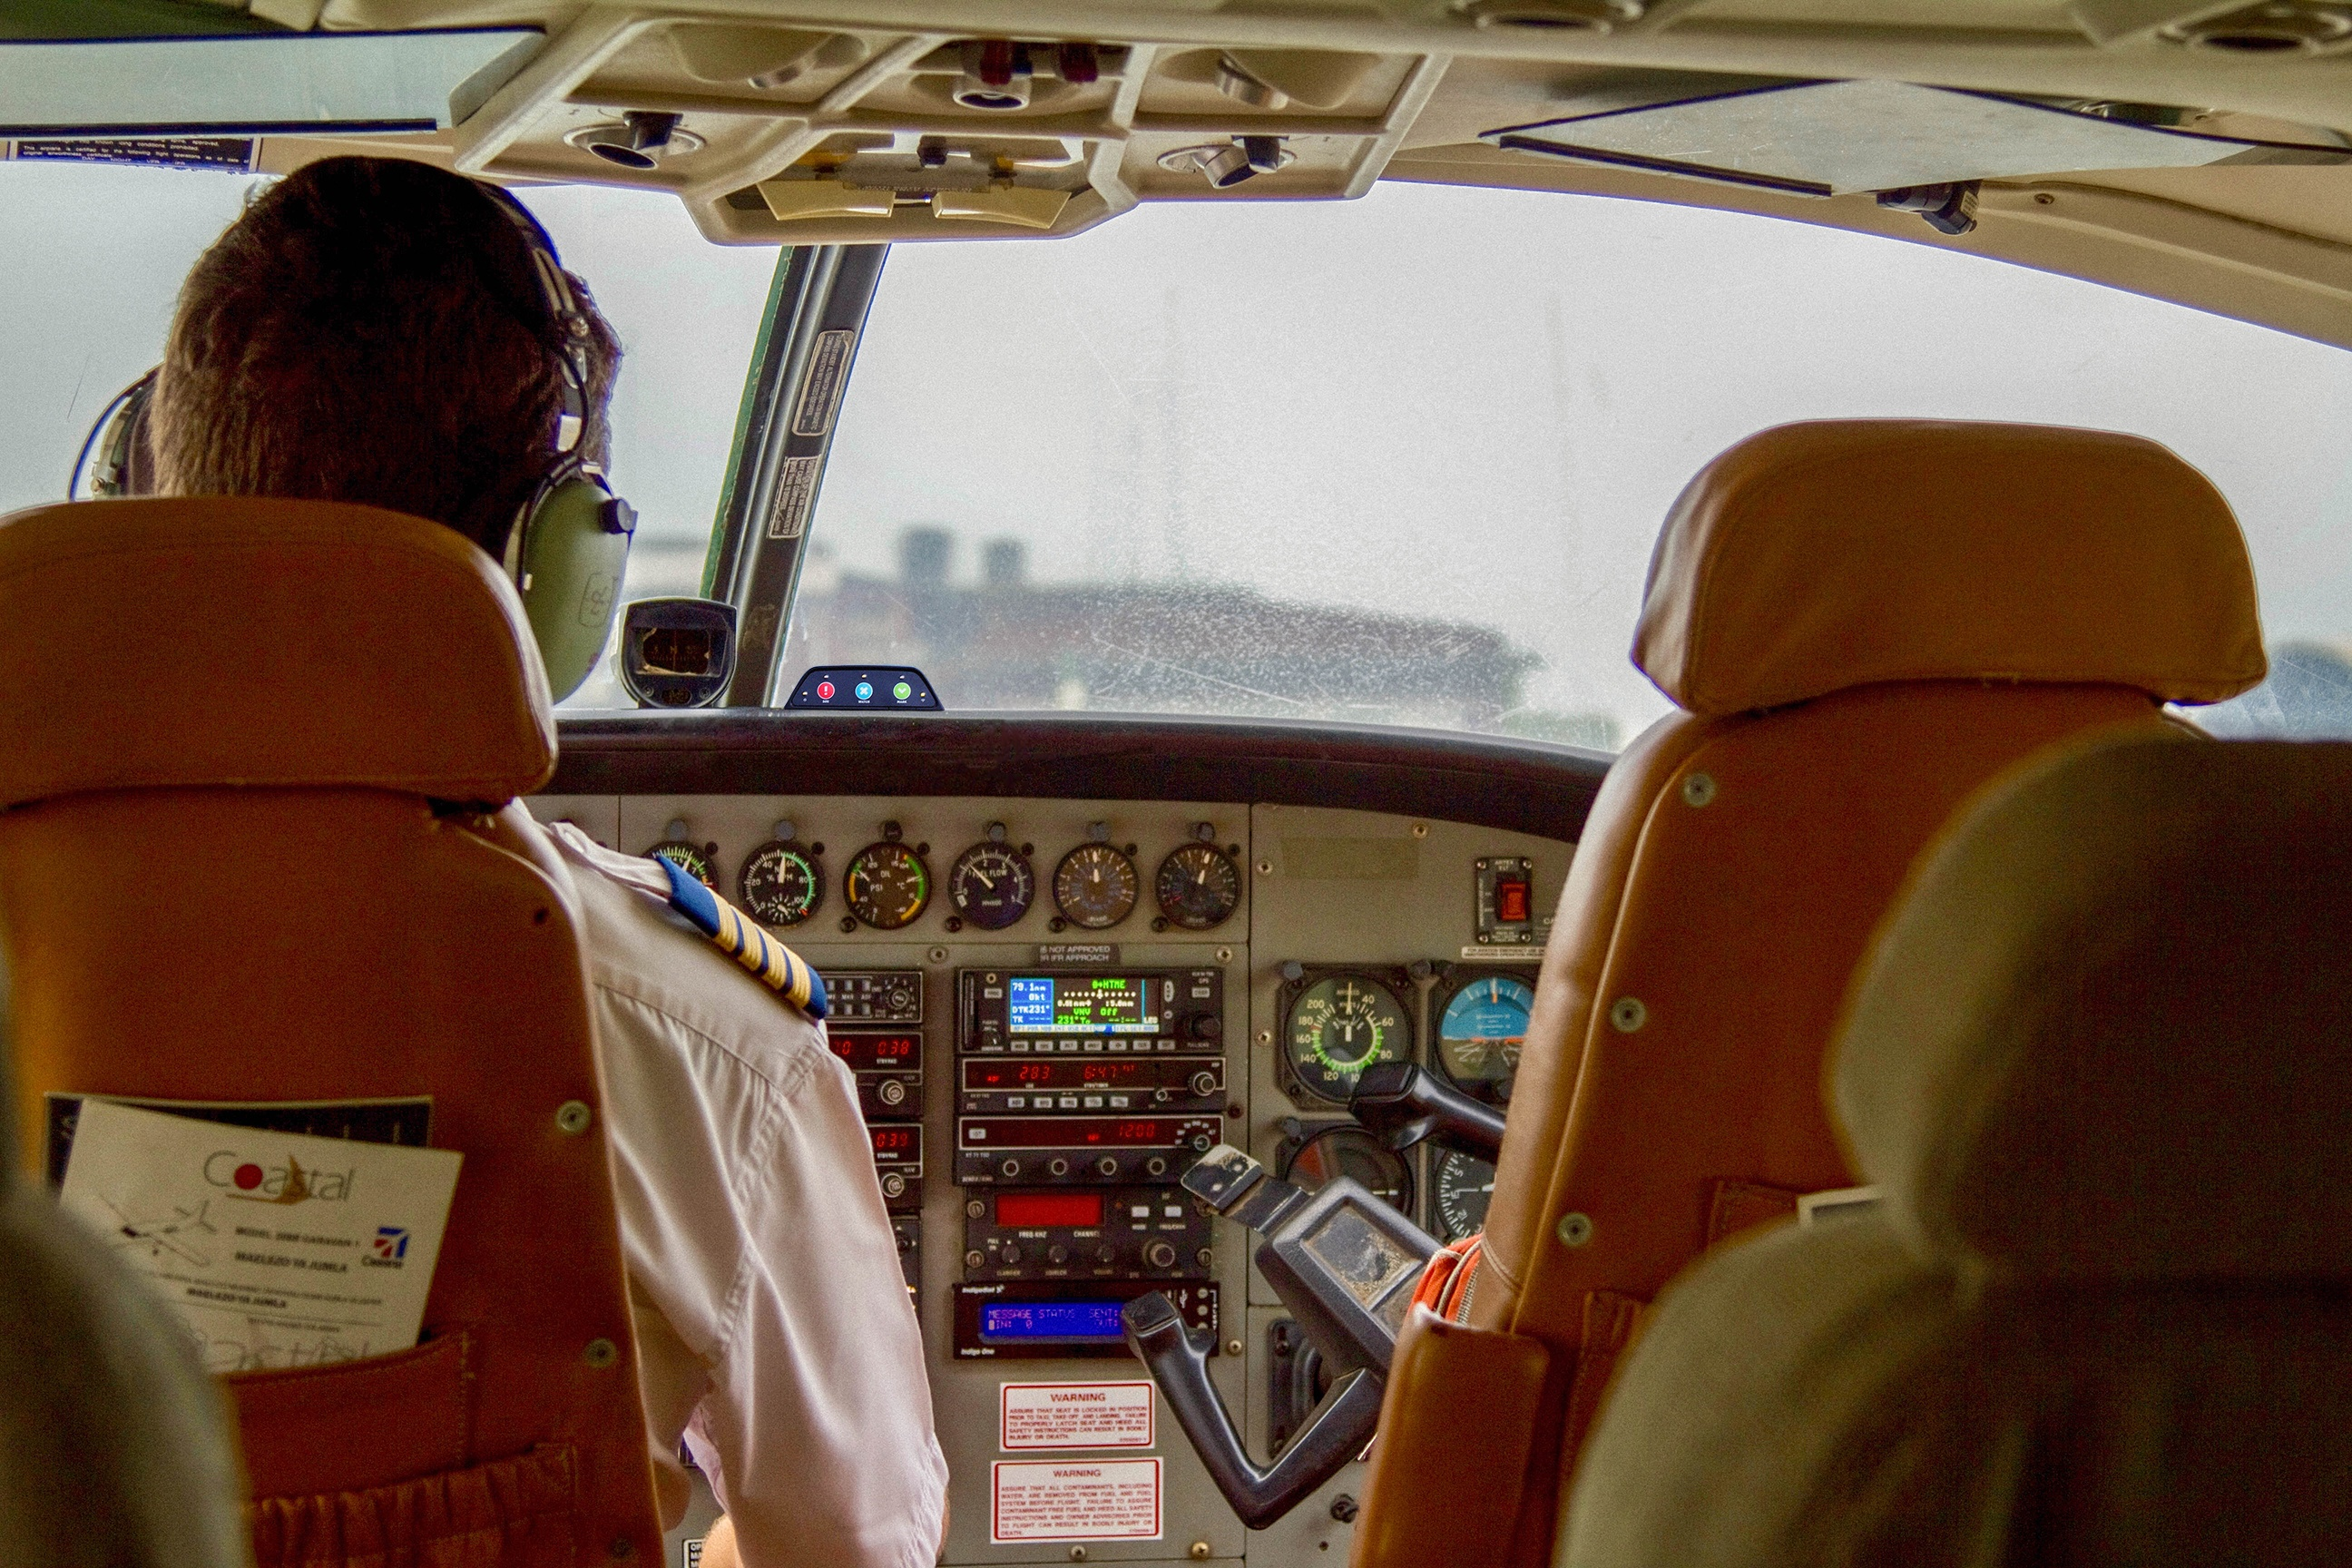 Spidertracks and Aeronet Unveil First Automated Maintenance Tracking Service at NBAA